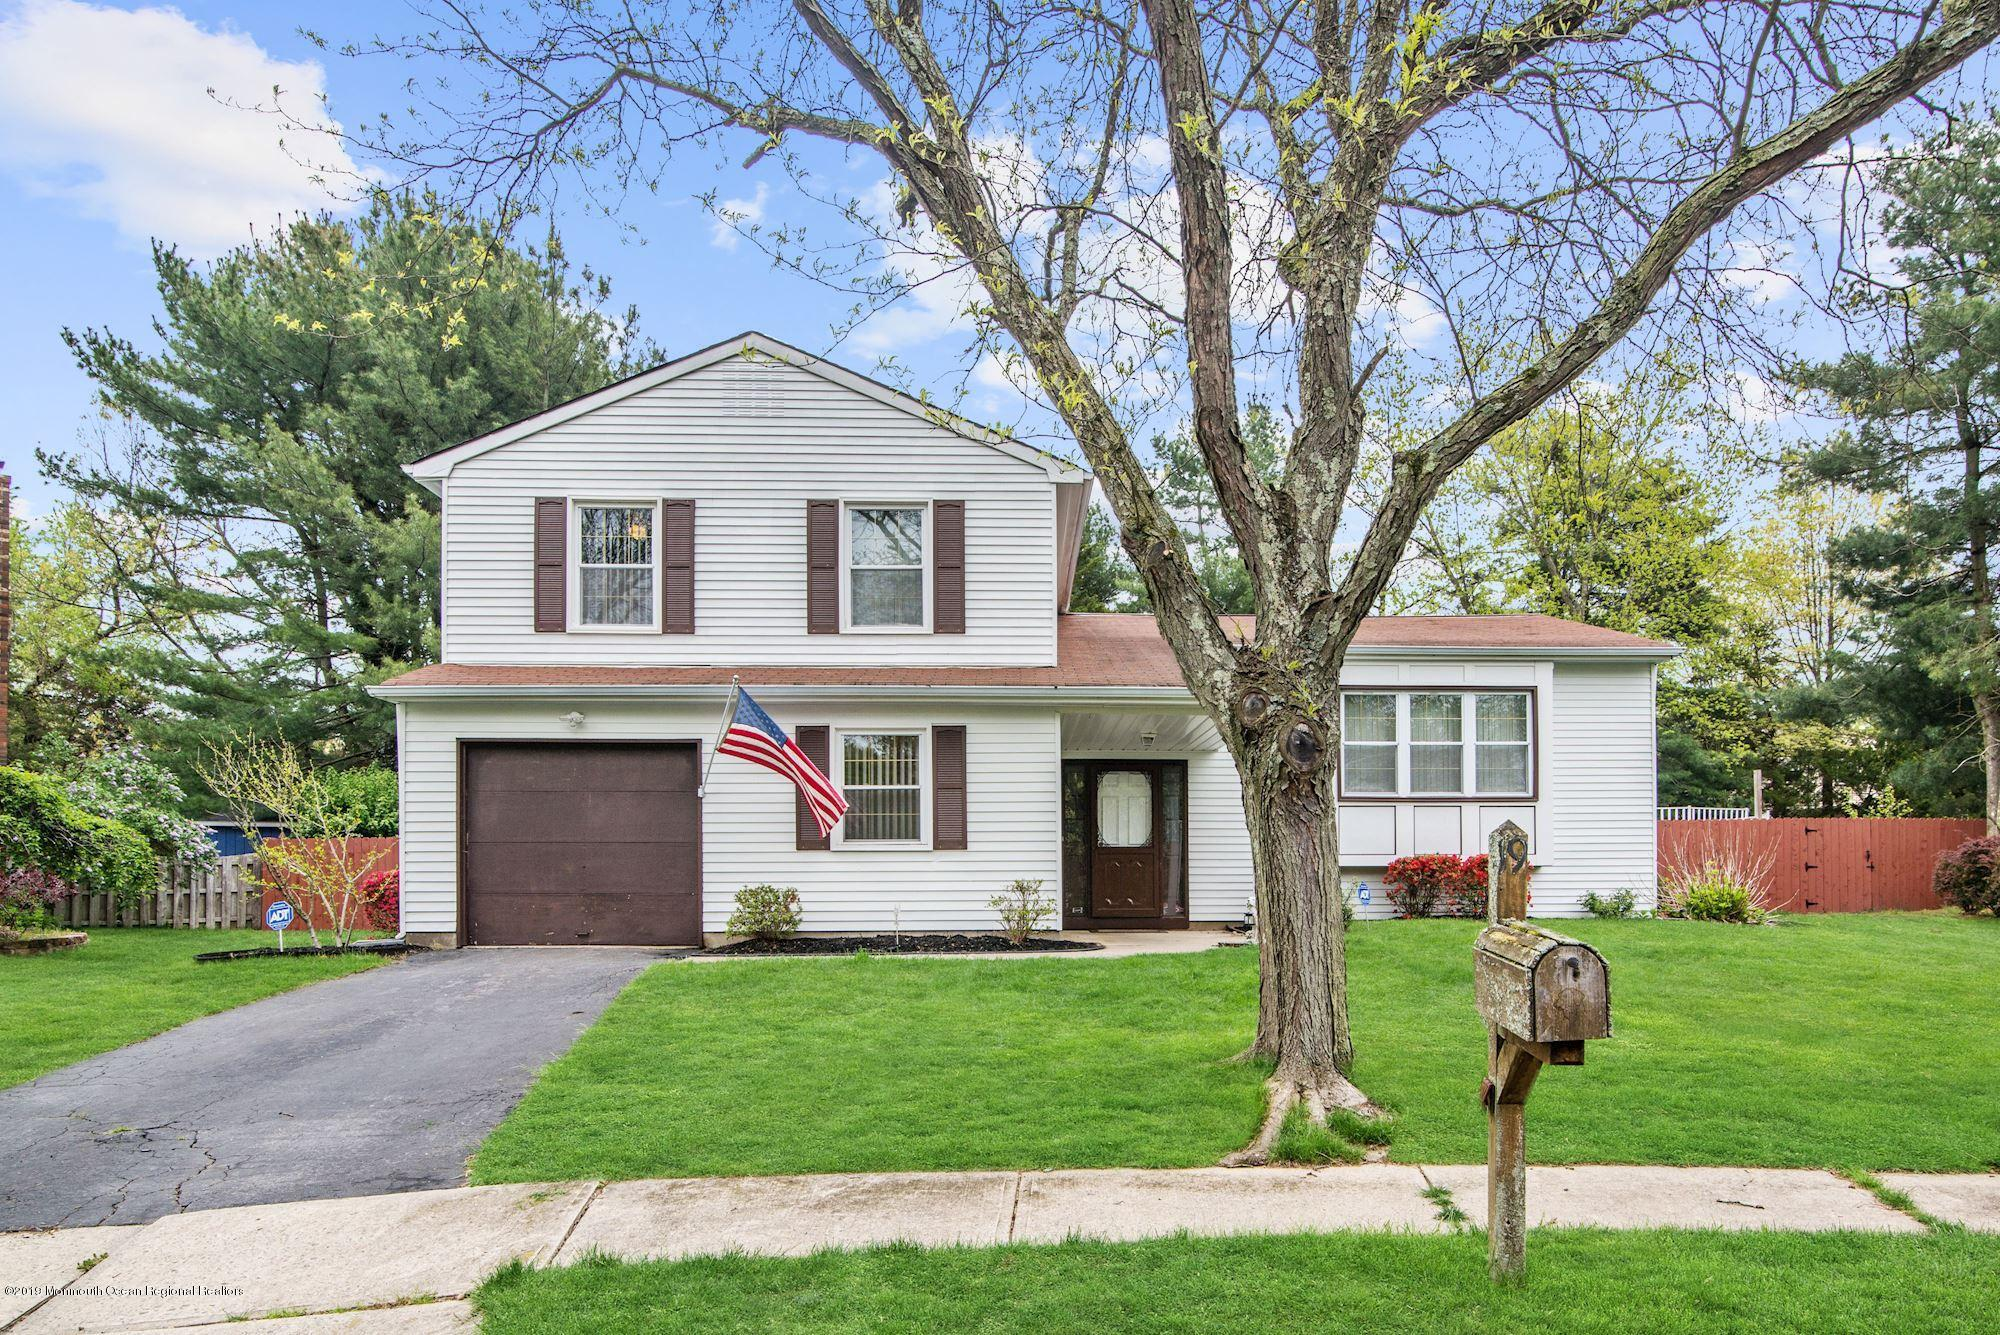 19 Hearth Court Howell NJ 07731